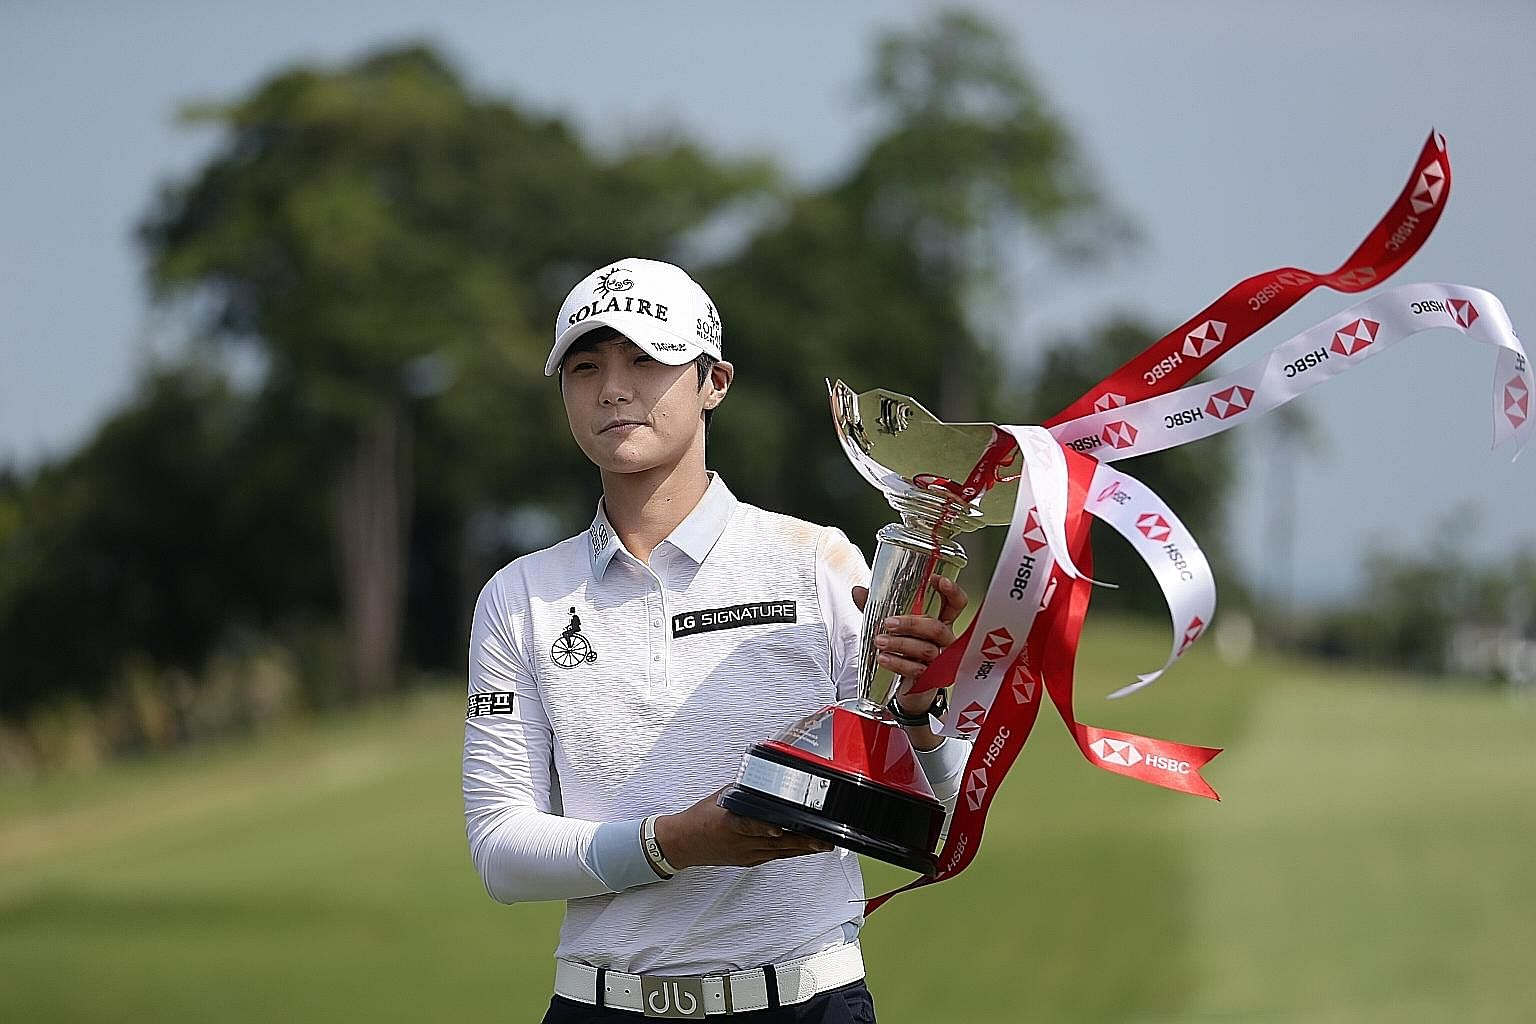 South Korean golfer Park Sung-hyun showing off her HSBC Women's World Championship trophy after firing an eight-under 64 in the final round at Sentosa Golf Club's New Tanjong Course yesterday. World No. 2 Park, 25, overcame a four-shot deficit to bea